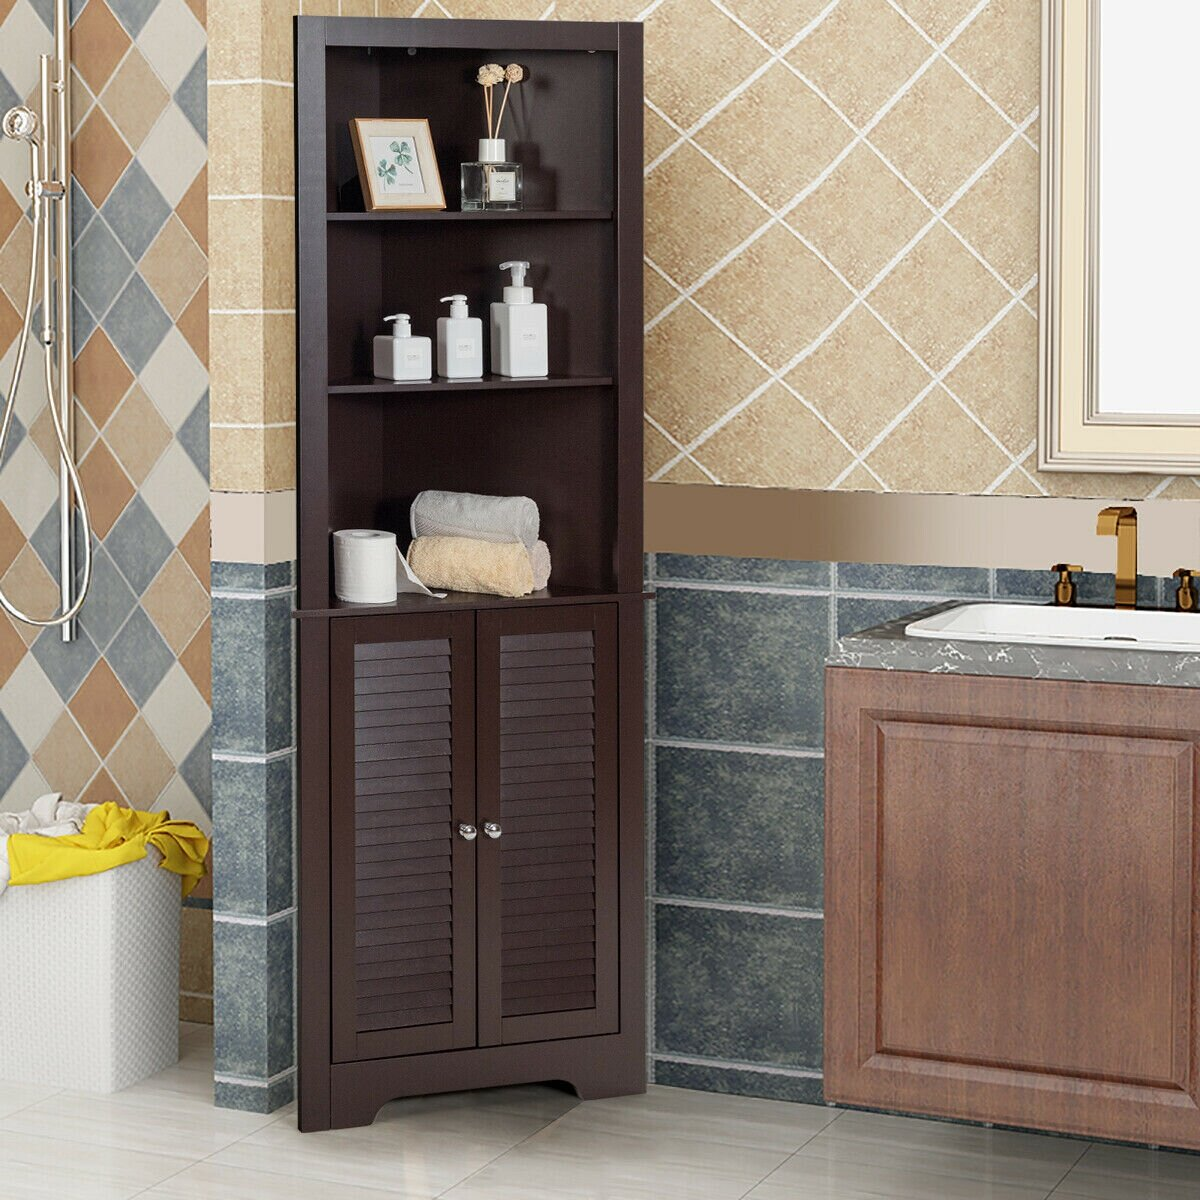 Red Barrel Studio 23 5 W X 68 H X 17 5 D Free Standing Bathroom Cabinet Wayfair